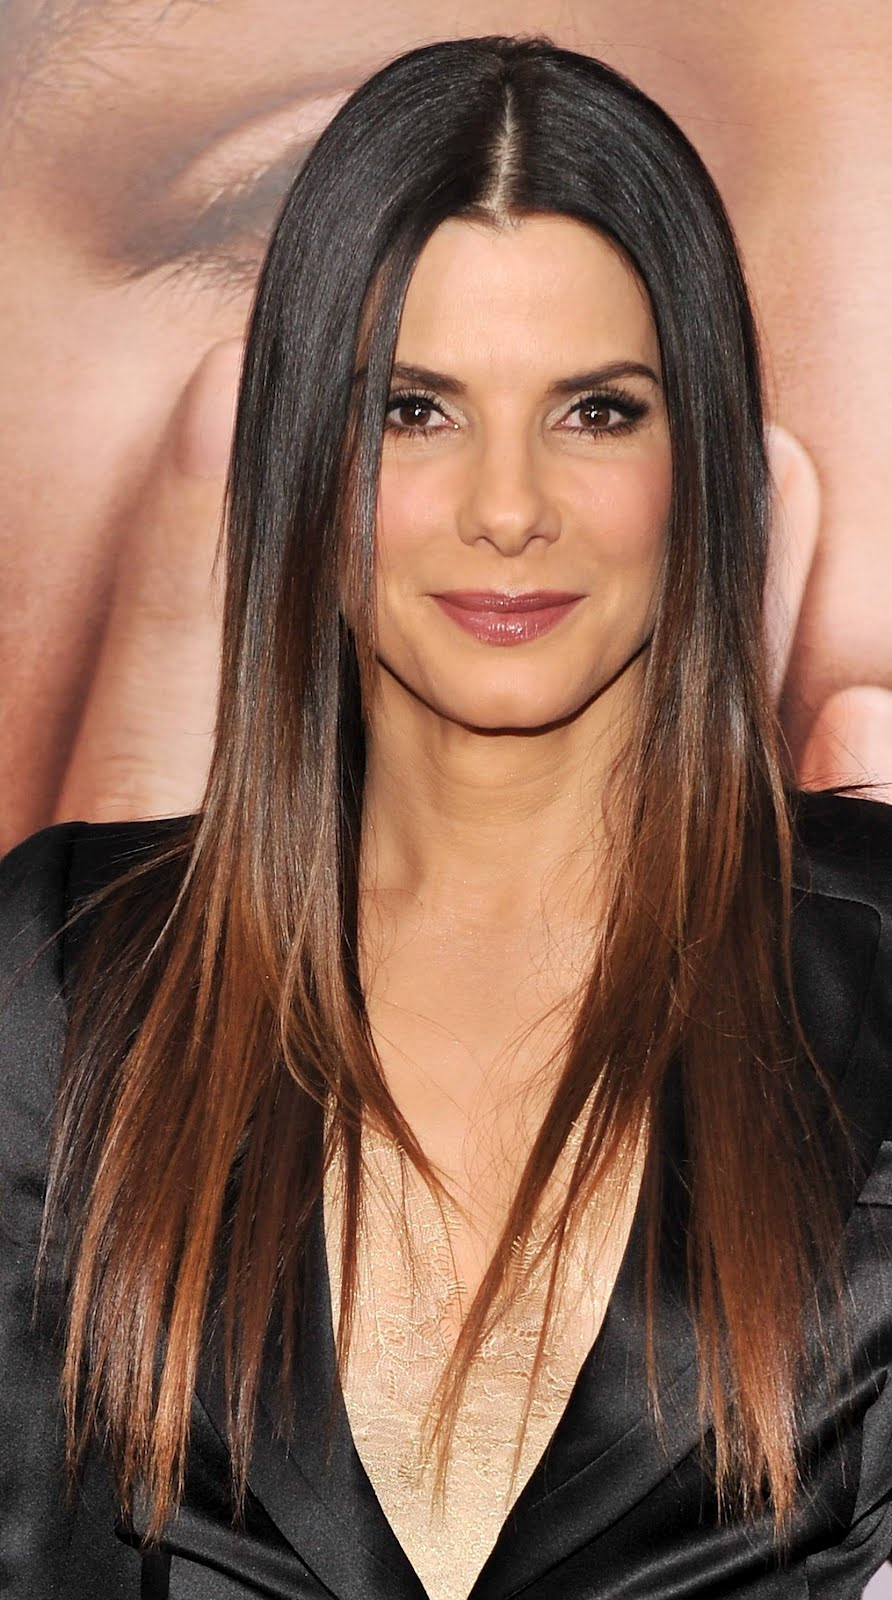 sandra bullock ombre hair short hairstyle 2013. Black Bedroom Furniture Sets. Home Design Ideas